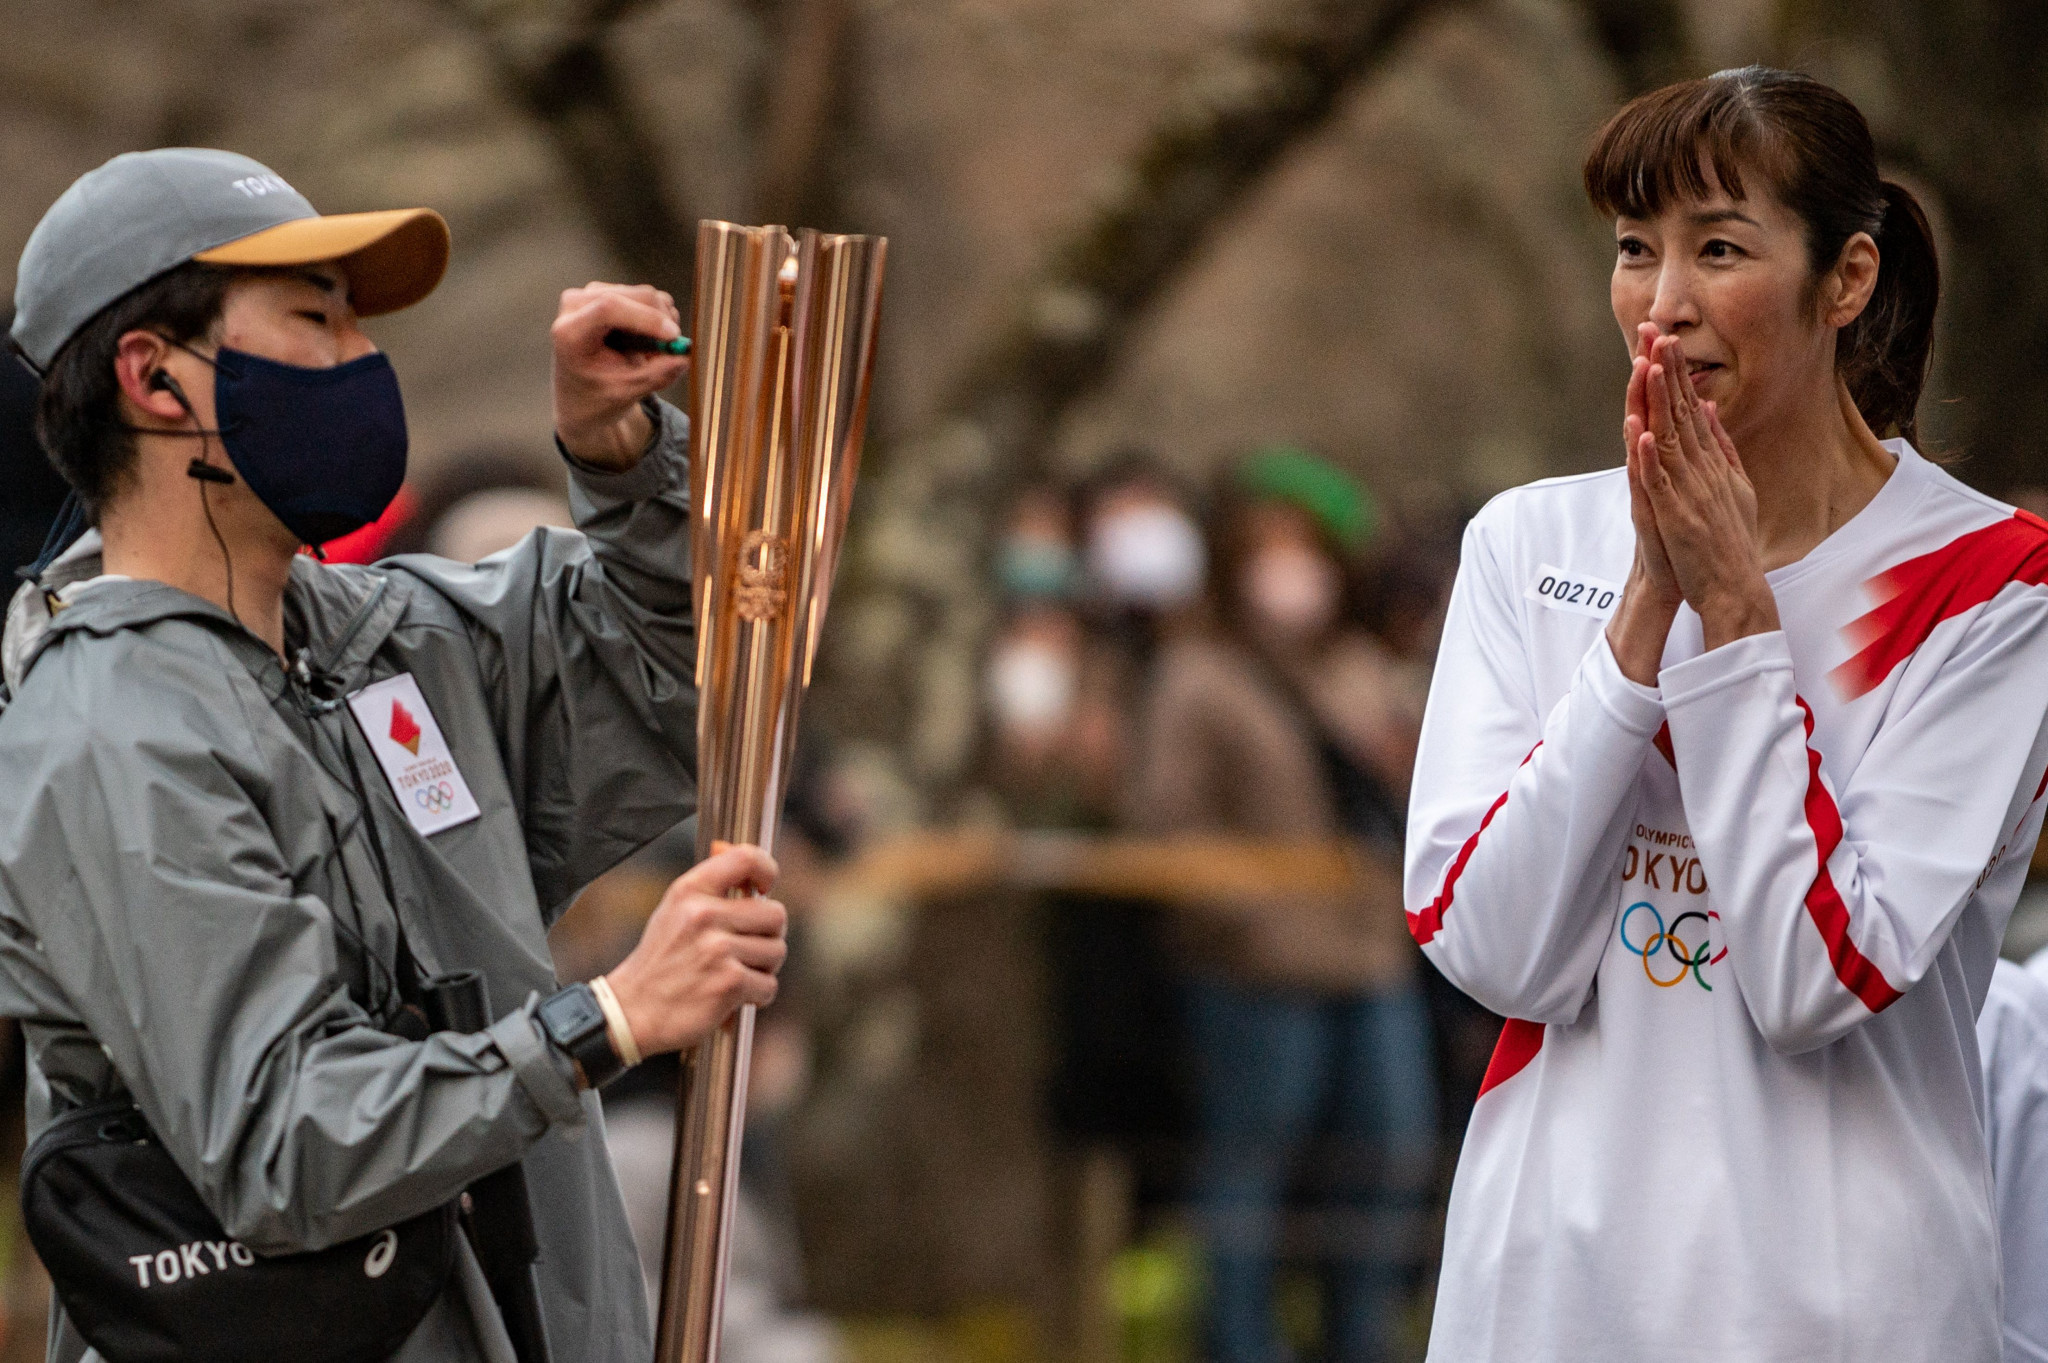 Women will be allowed to take part in the Olympic Torch Relay leg in Aichi Prefecture which includes a traditional boat ride ©Getty Images